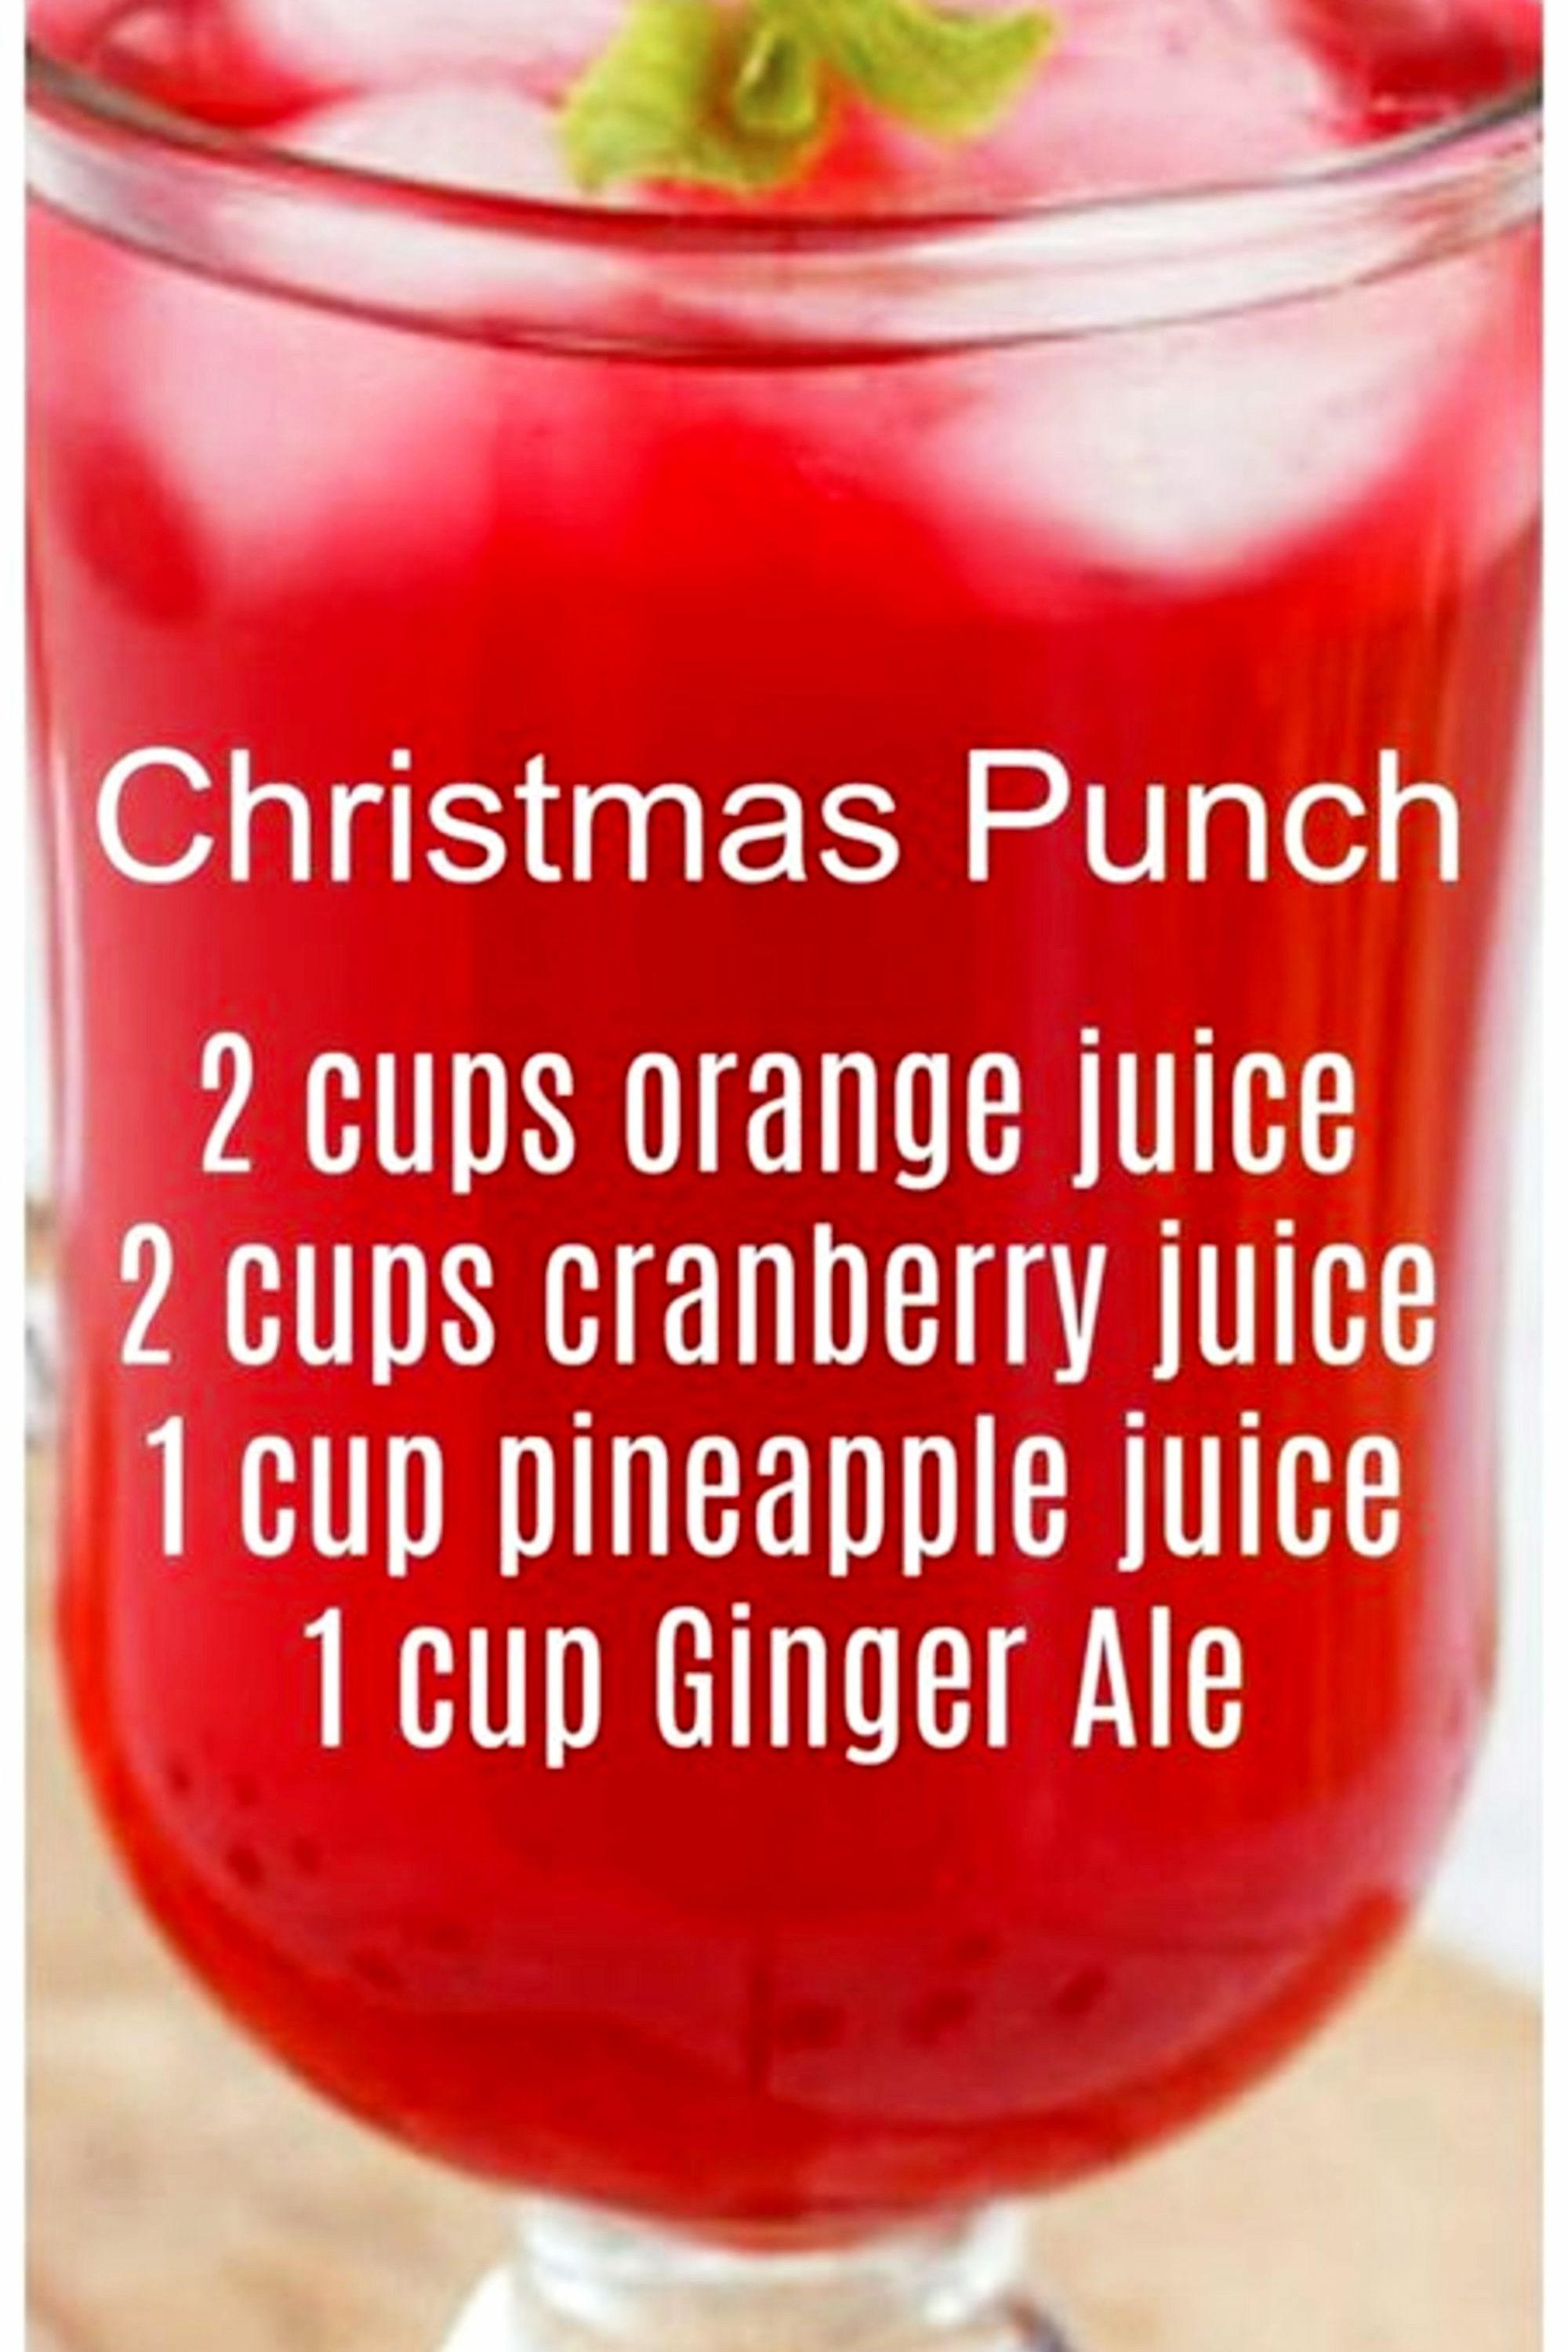 11 Easy Punch Recipes For A Crowd Simple Party Drinks Ideas Both Nonalcoholic And With Alcohol Clever Diy Ideas Christmas Punch Recipes Alcohol Drink Recipes Easy Punch Recipes